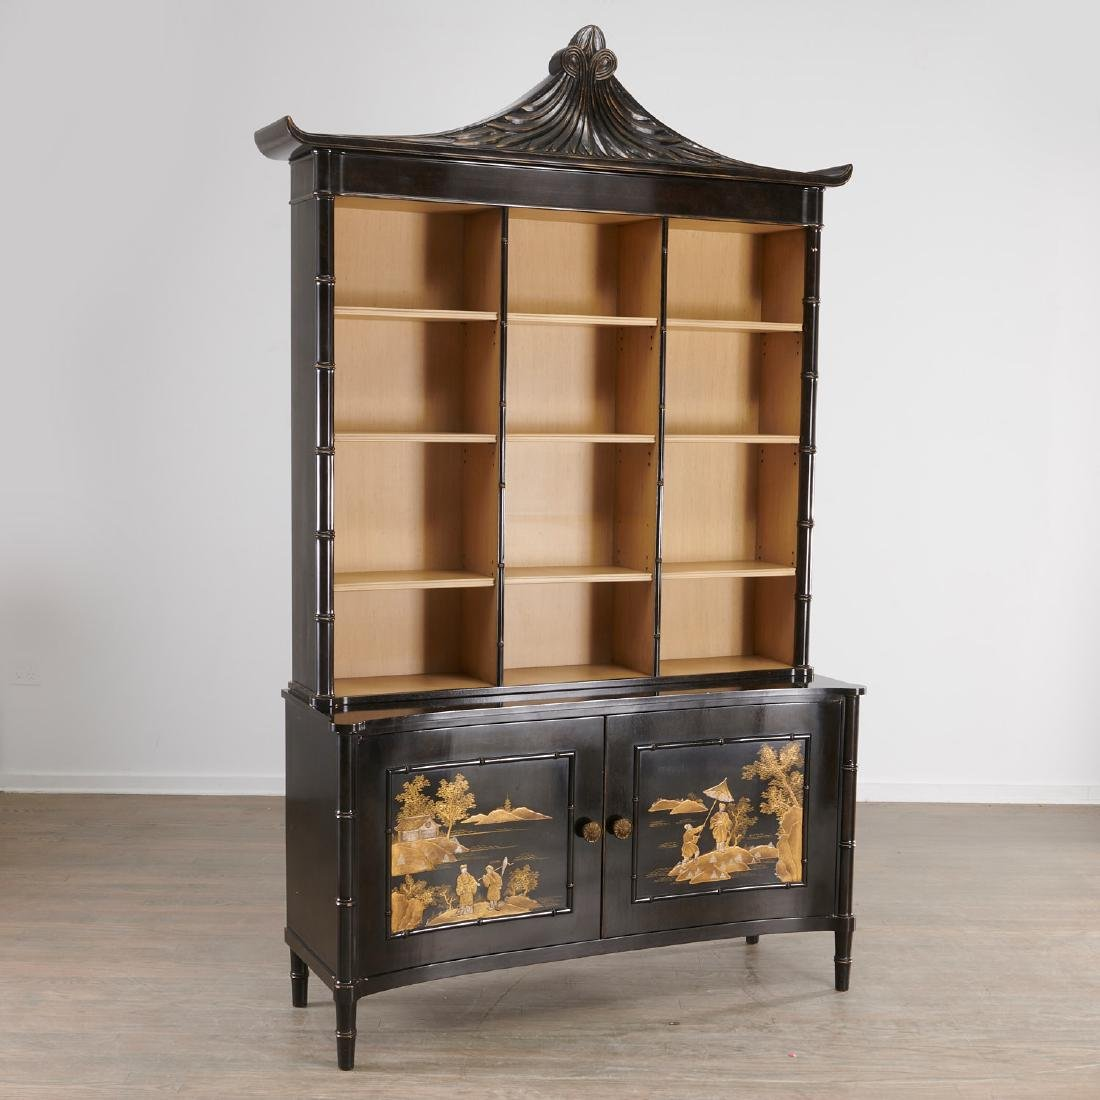 Regency style Chinoiserie lacquer bookcase cabinet